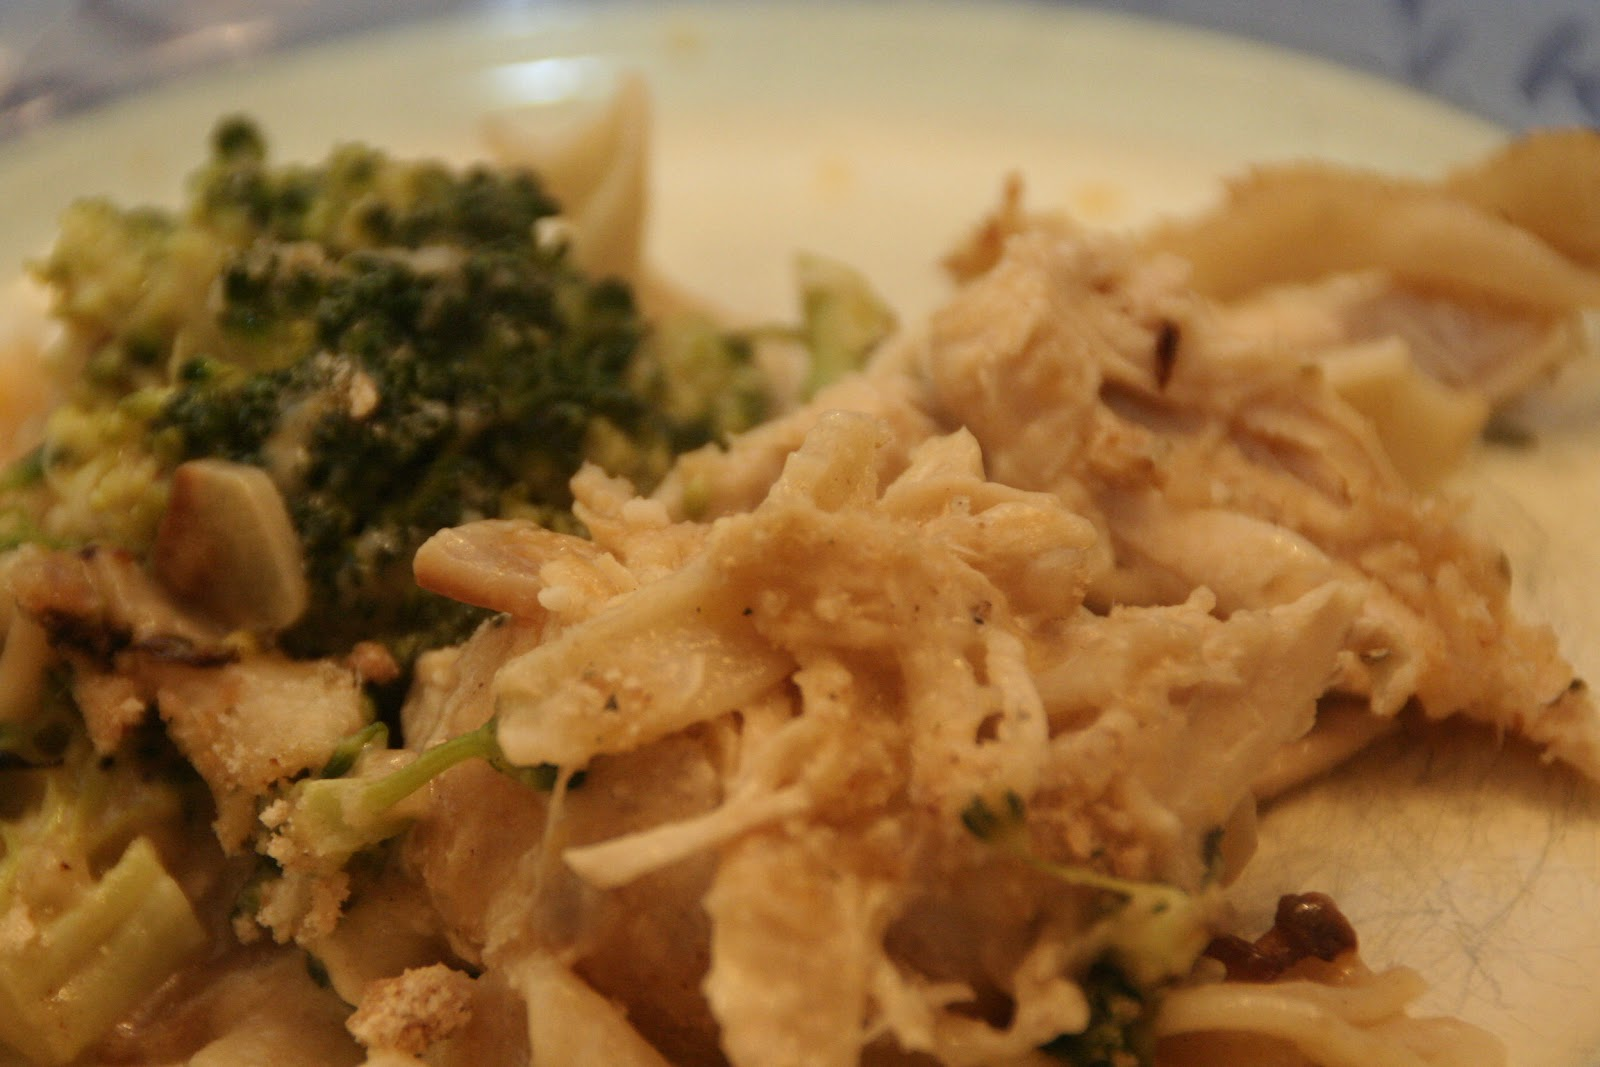 Tales from the Mad Men Kitchen: Chicken and Broccoli Noodle Casserole